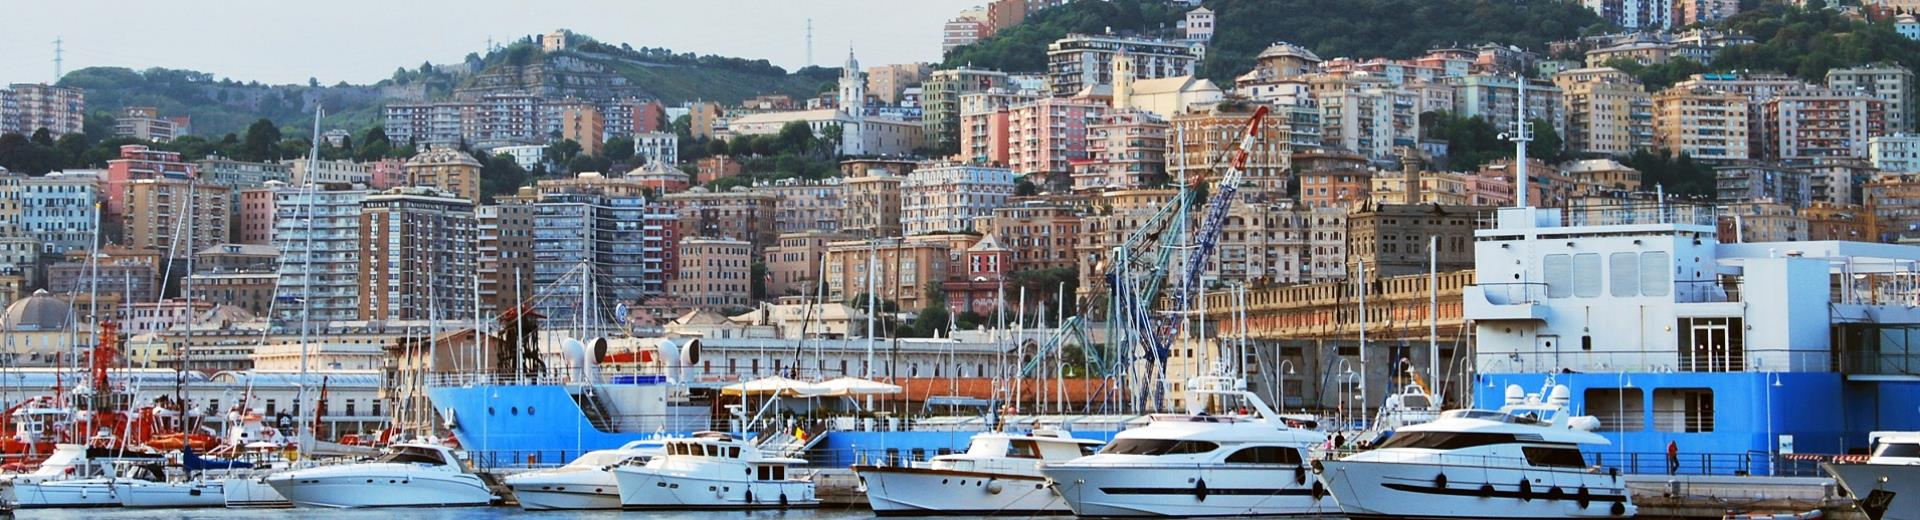 Discover Genoa and surroundings with the BW Hotel Metropoli Genoa Centre